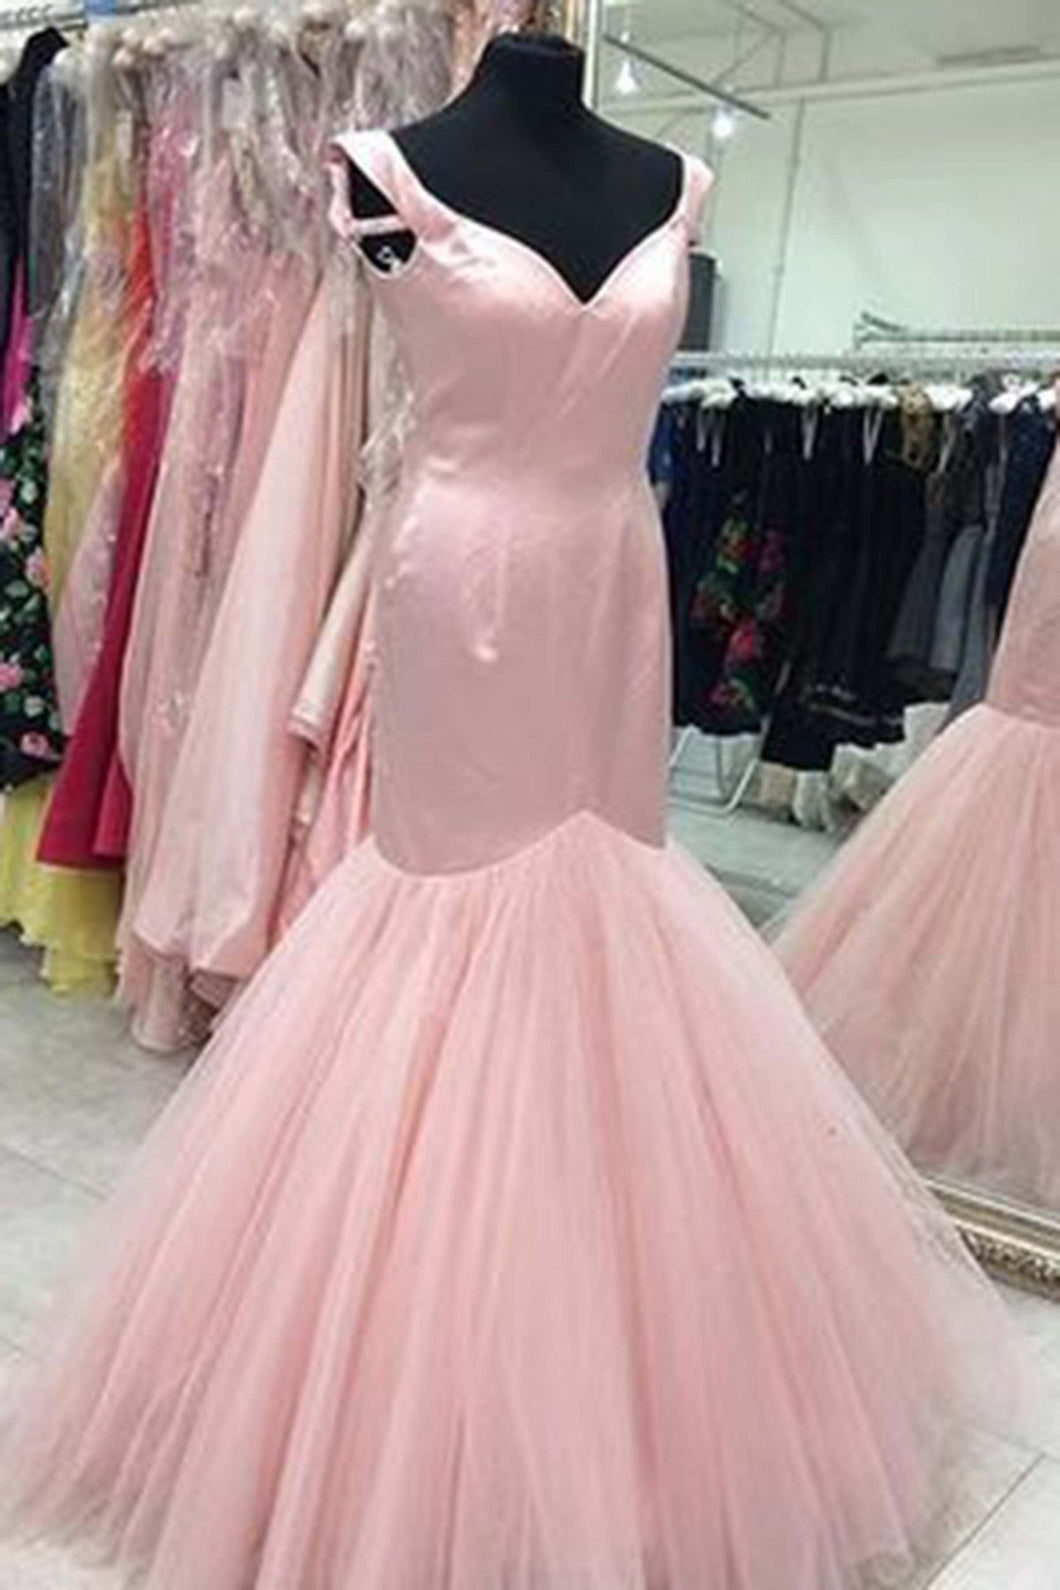 2019 Prom Dresses | Cute pink tulle satins v-neck long prom dress,mermaid dresses for teens